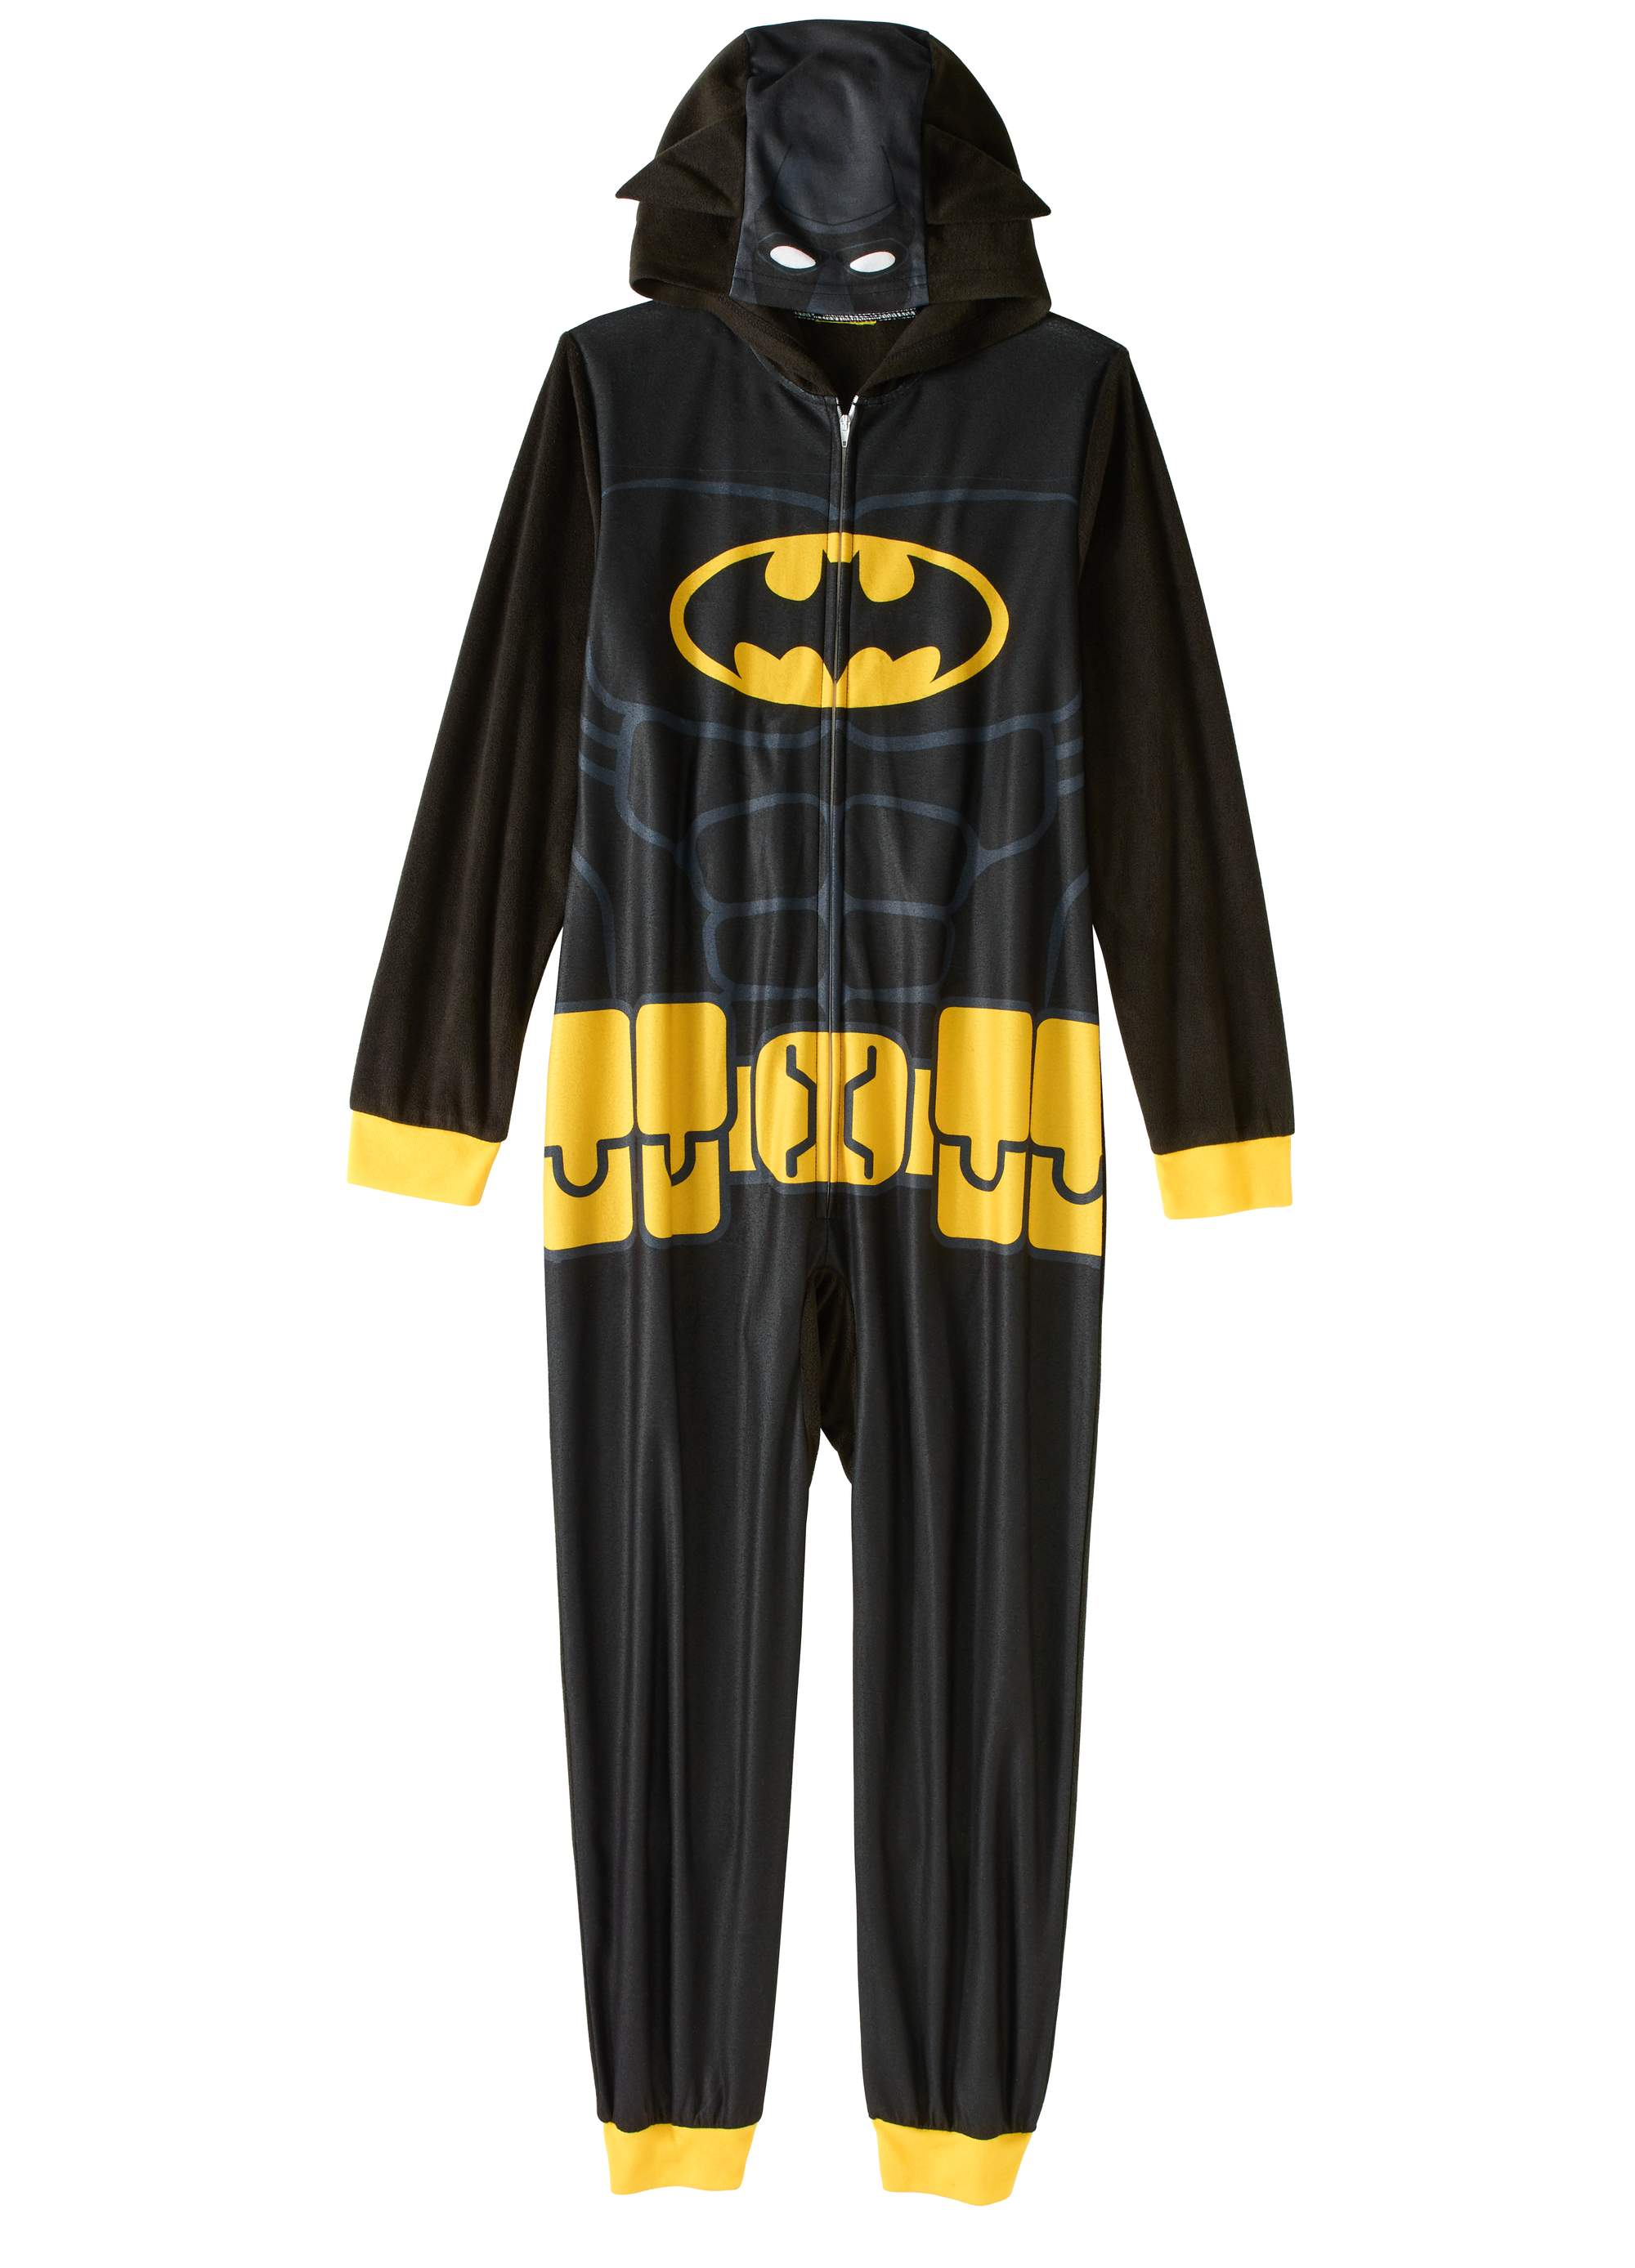 Batman Boys' Hooded Pajama Onesie Union Suit by Generic